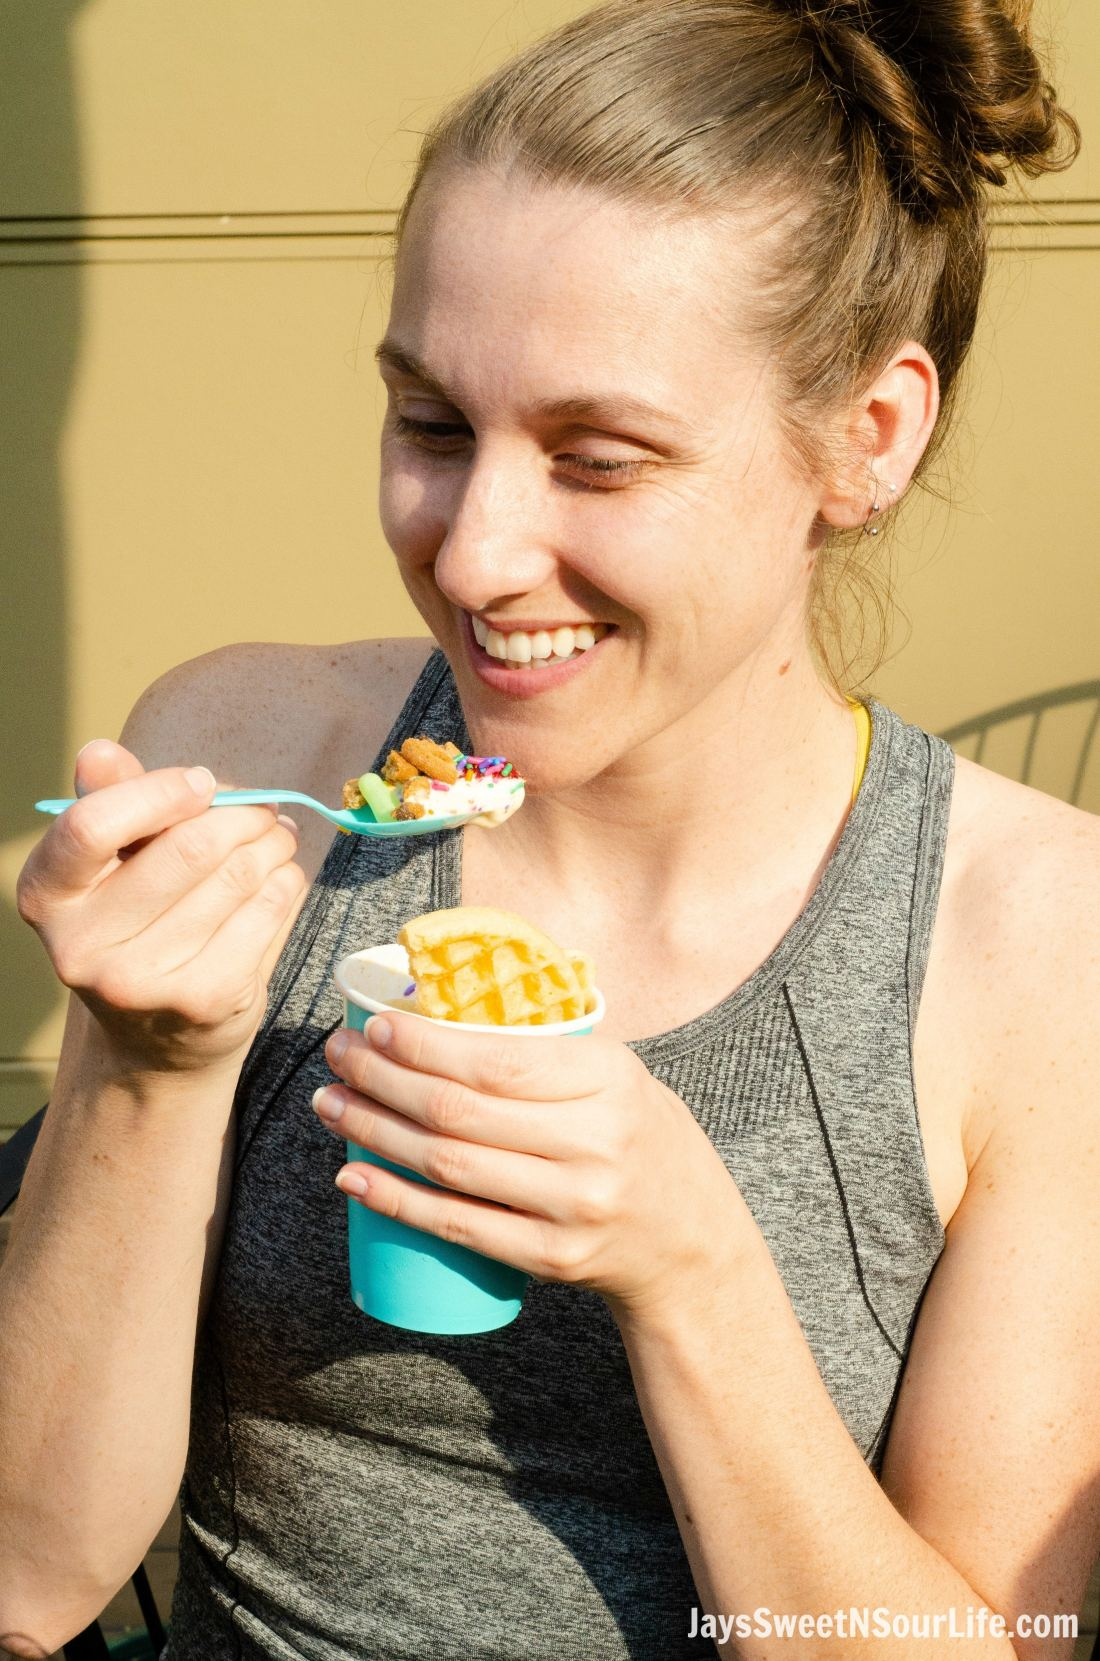 Woman enjoying a sundae at a Beach Sundae Party with friends and family.